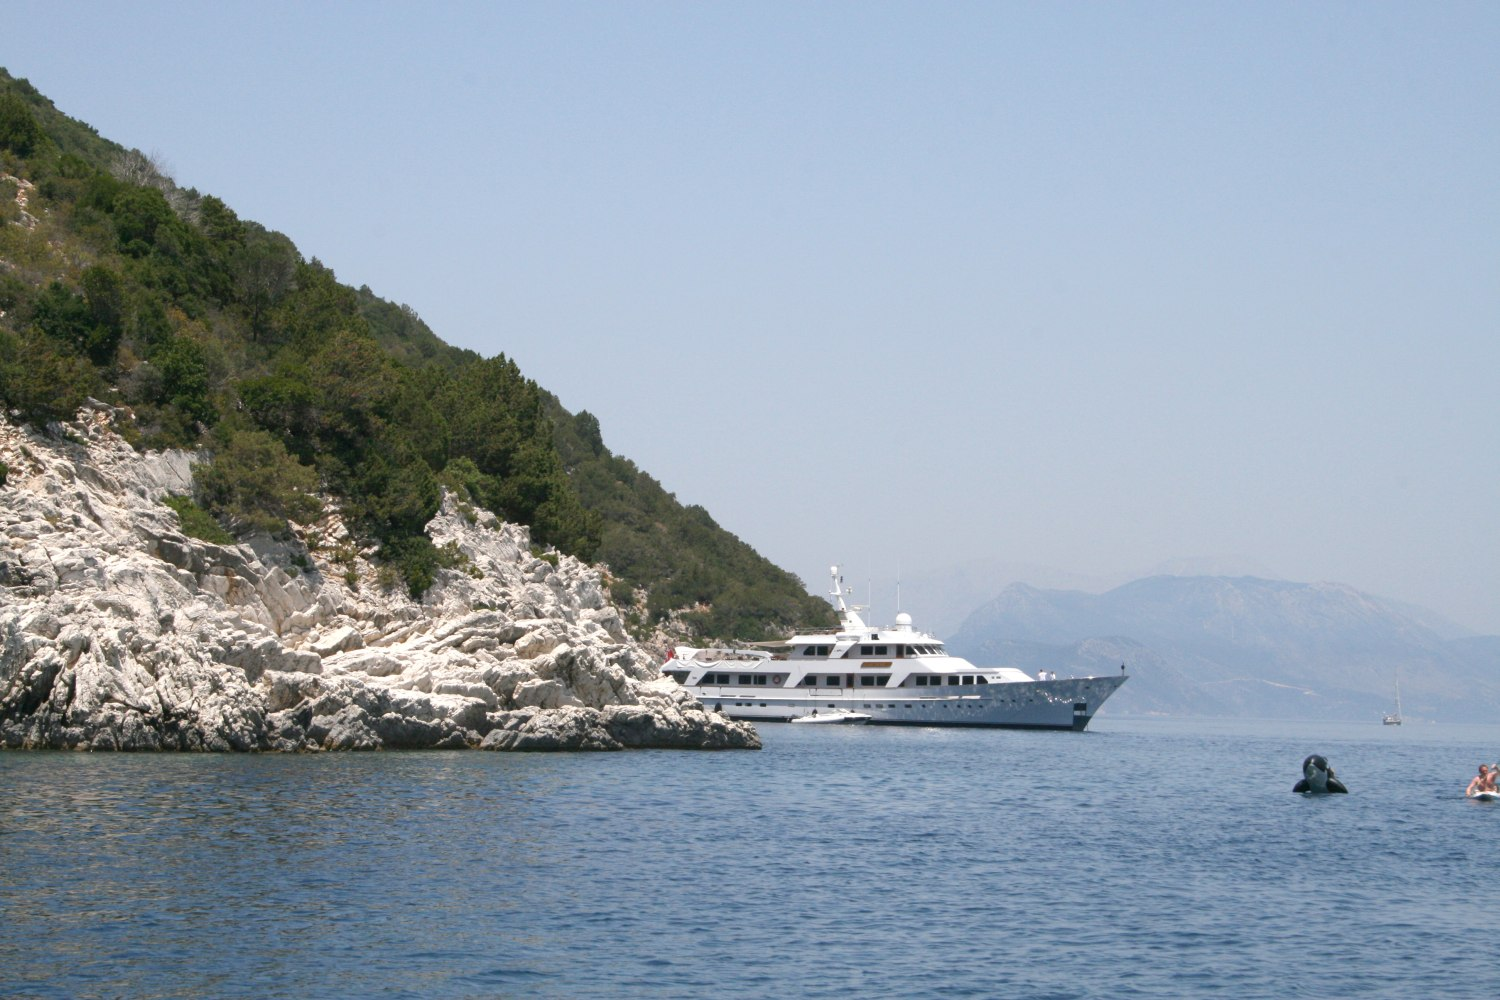 Private Islands for sale - Greek Island in the Ionian Sea - Greece ...